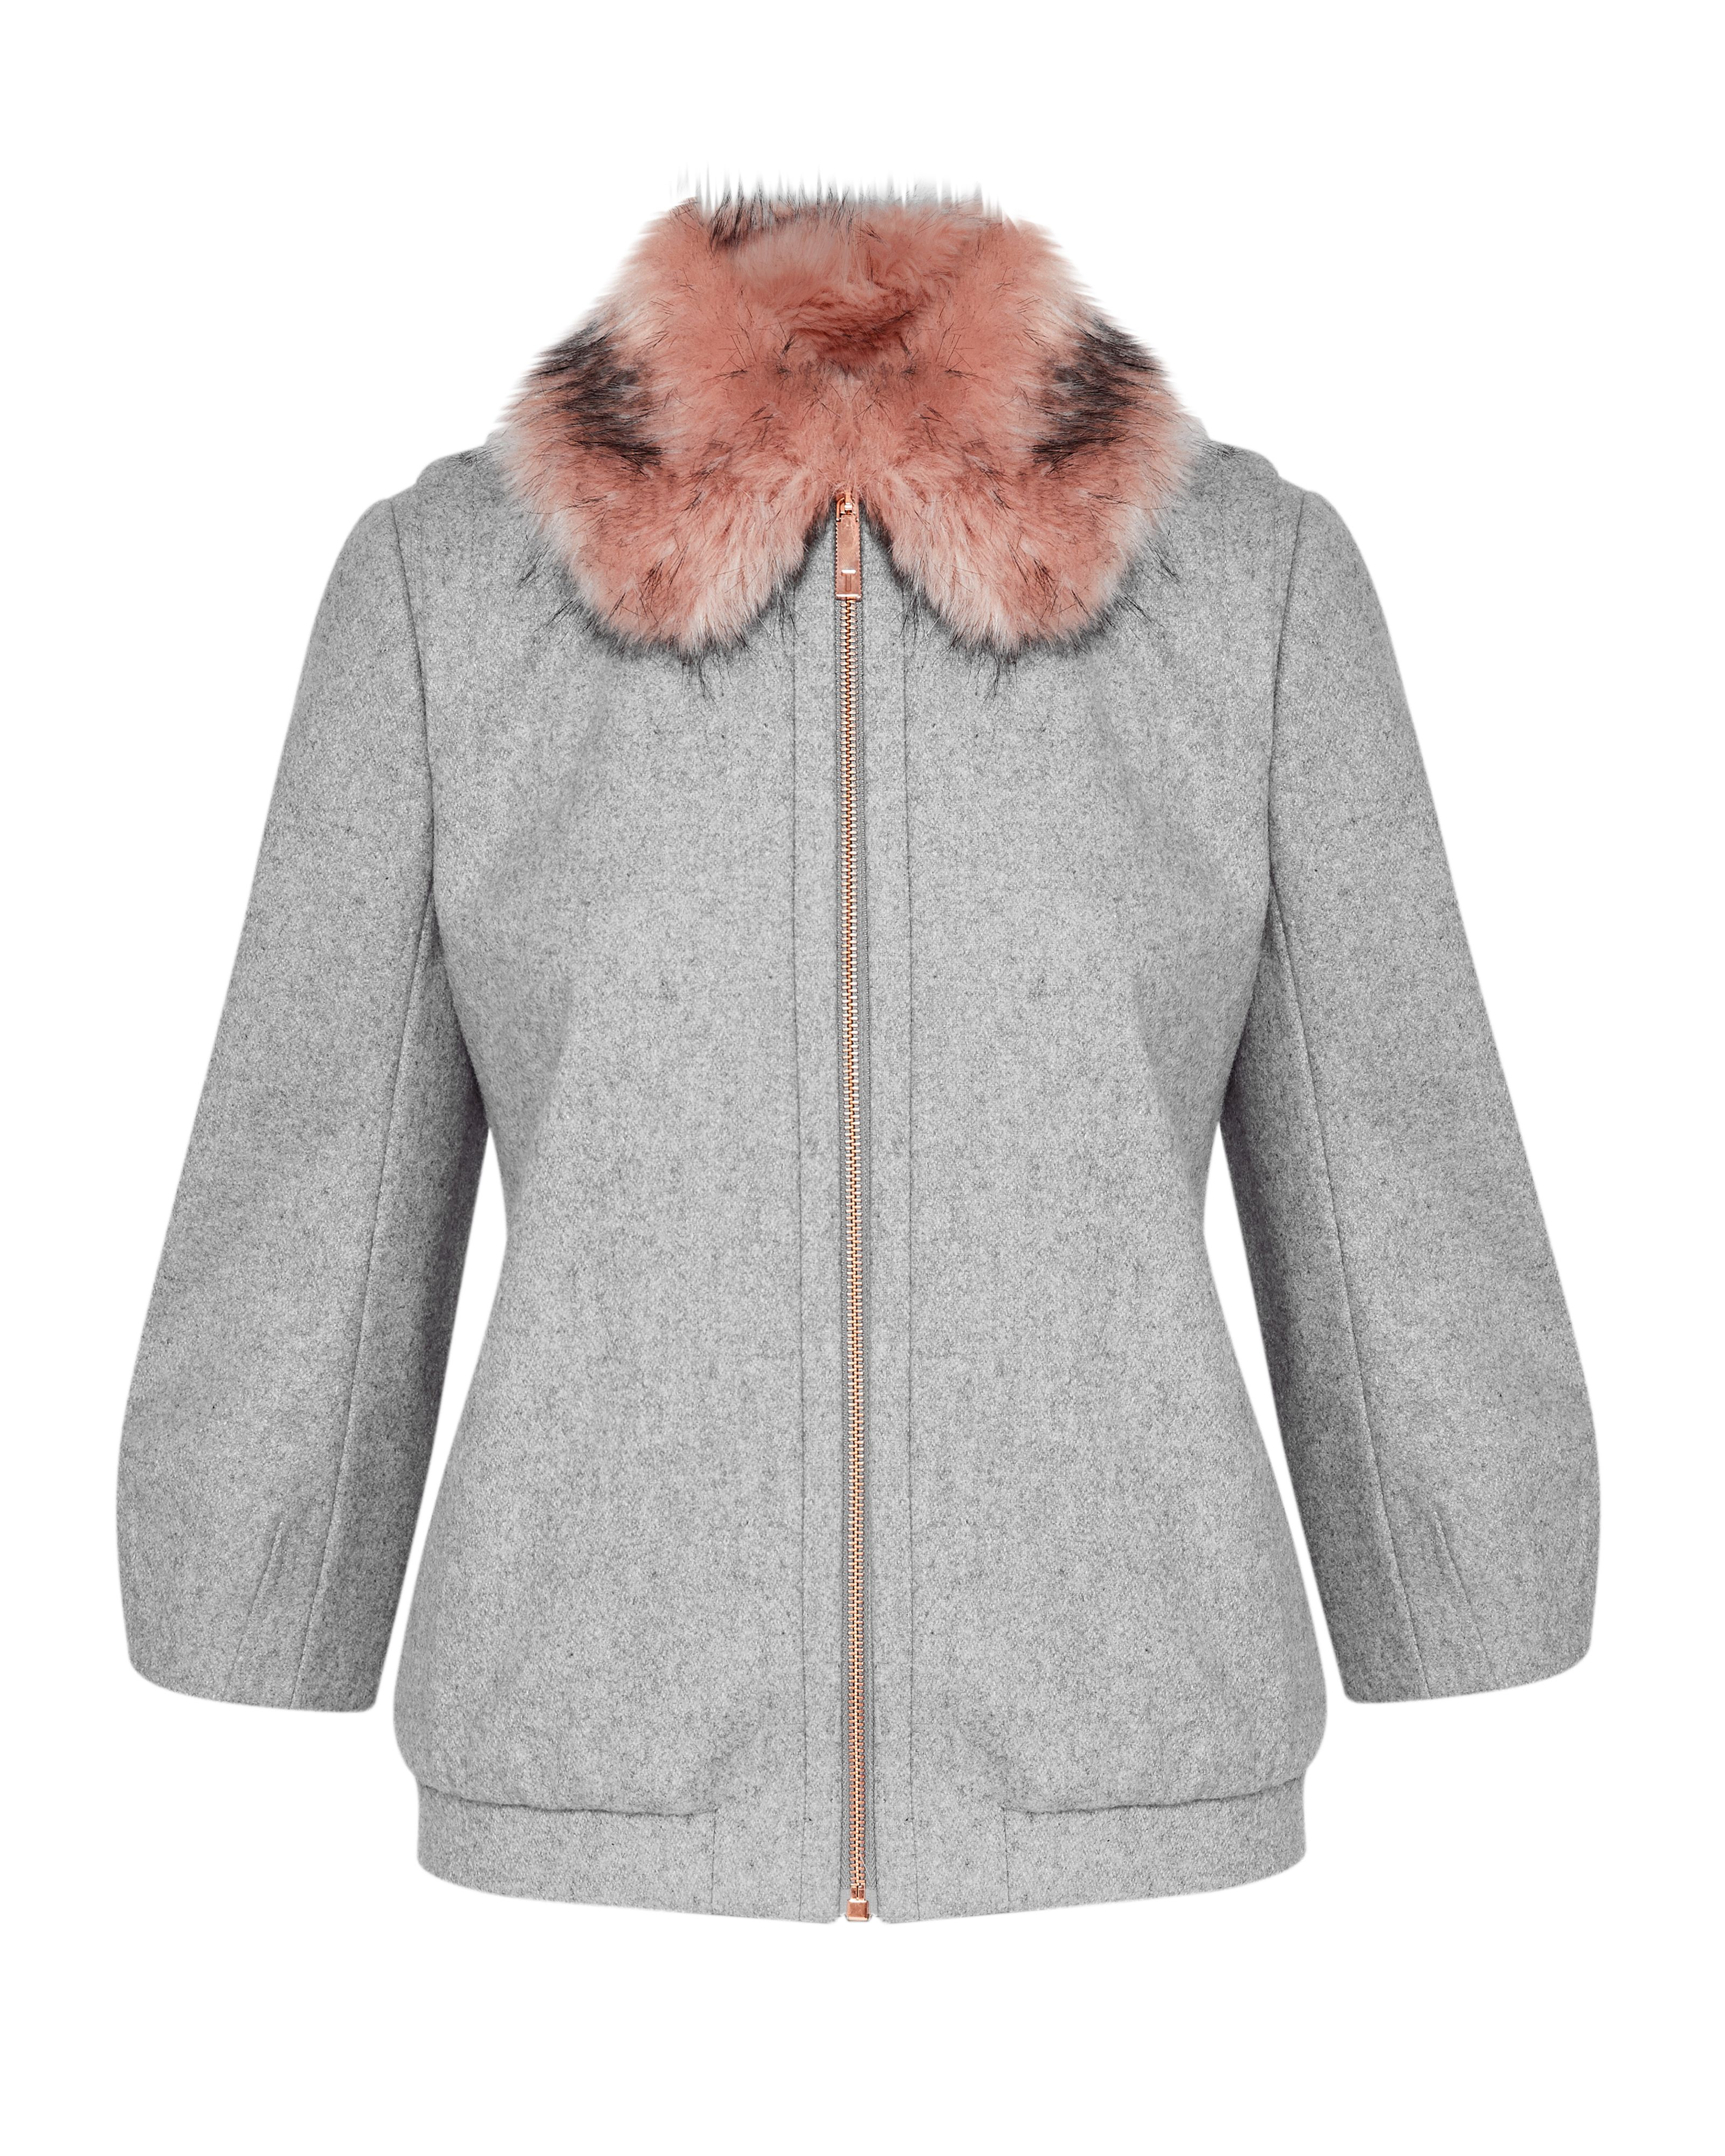 Ted Baker Robley Wool And Cashmere-Blend Faux Fur, Light Grey